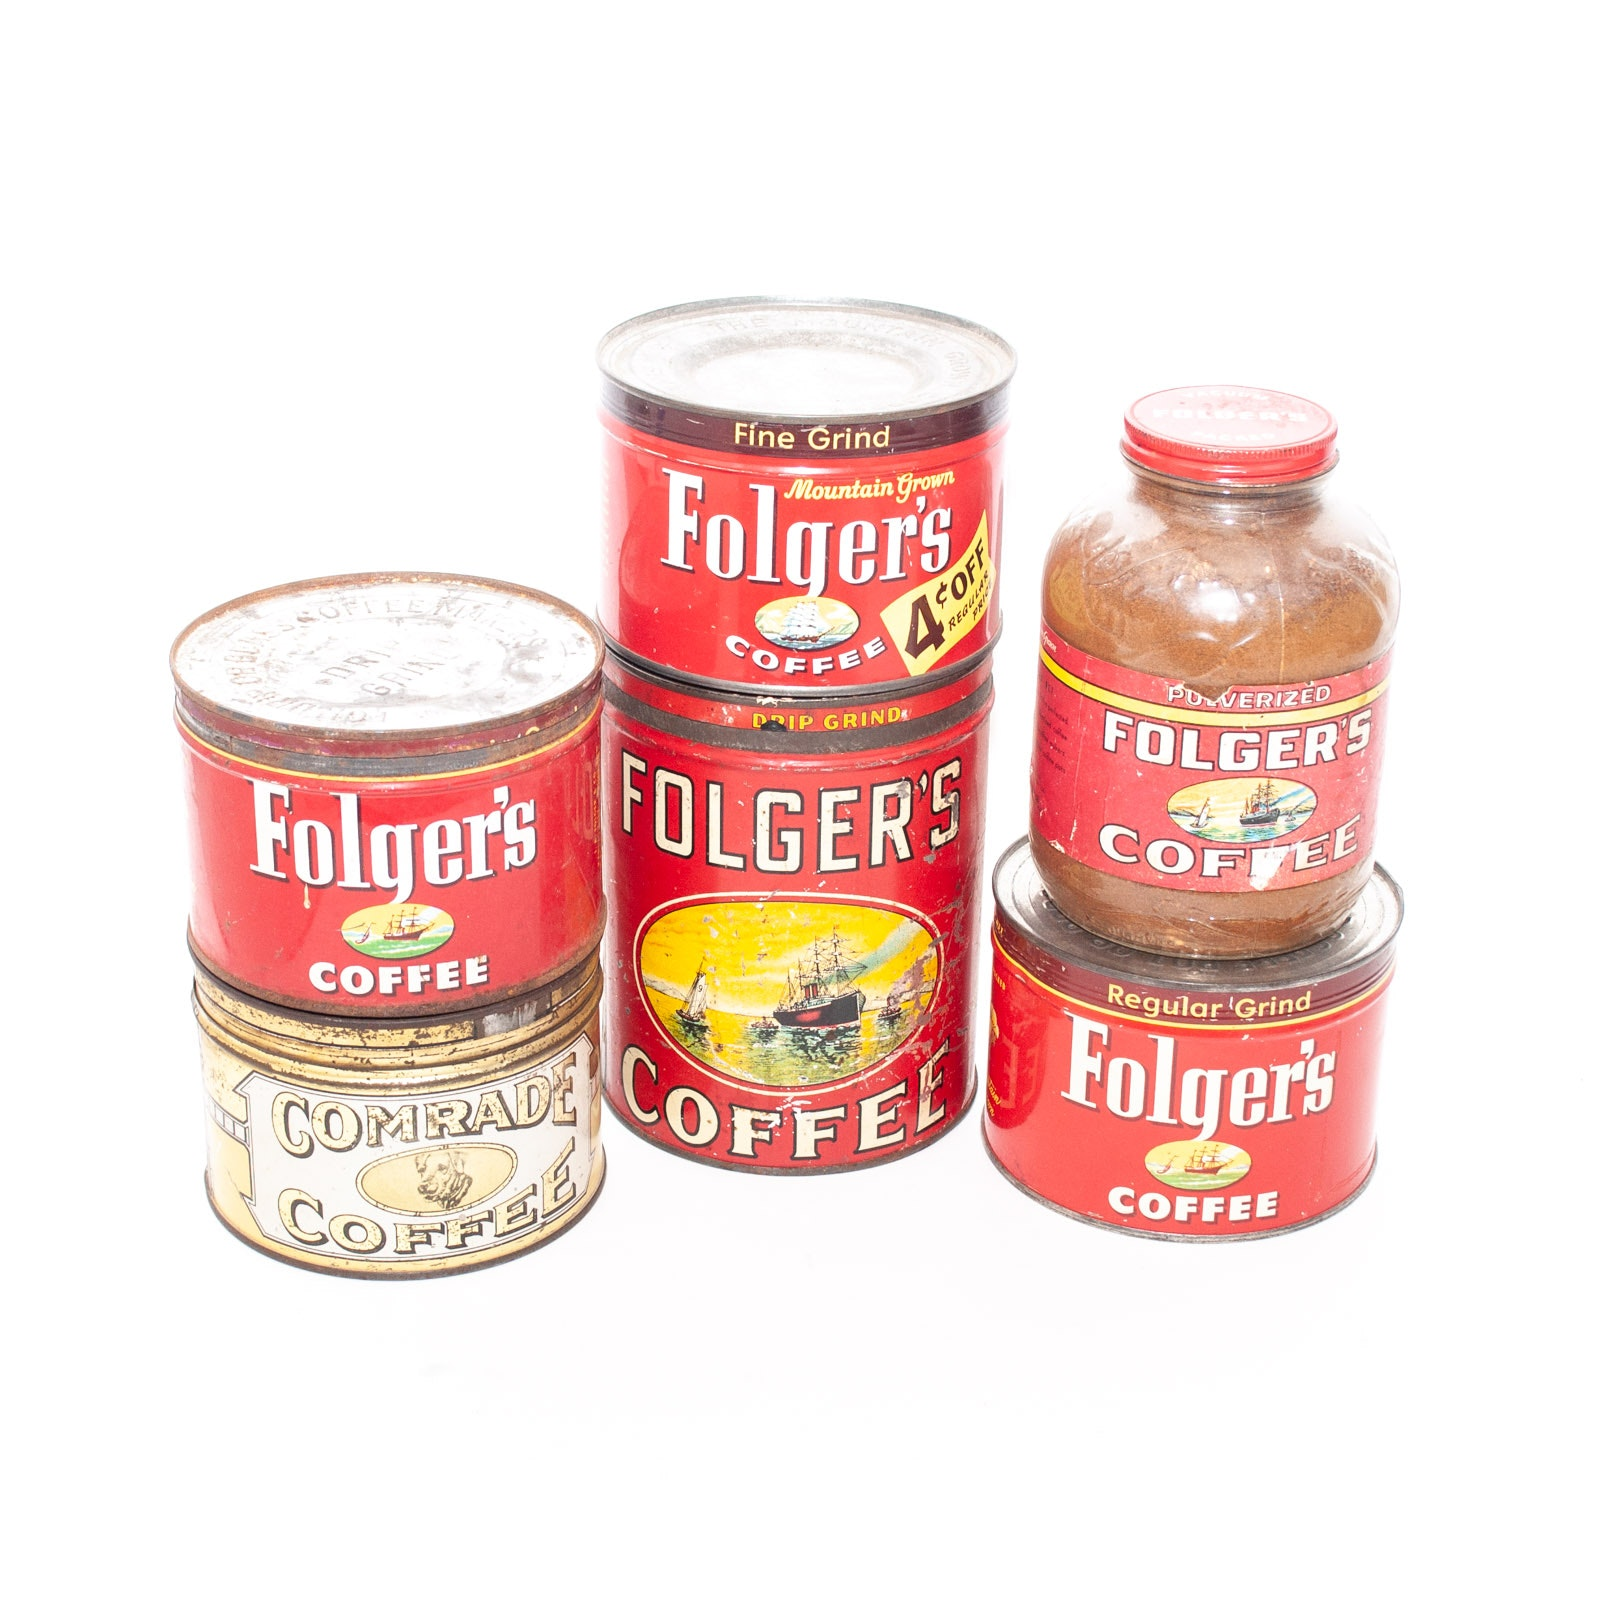 Vintage Folgers Coffee Cans and Jar